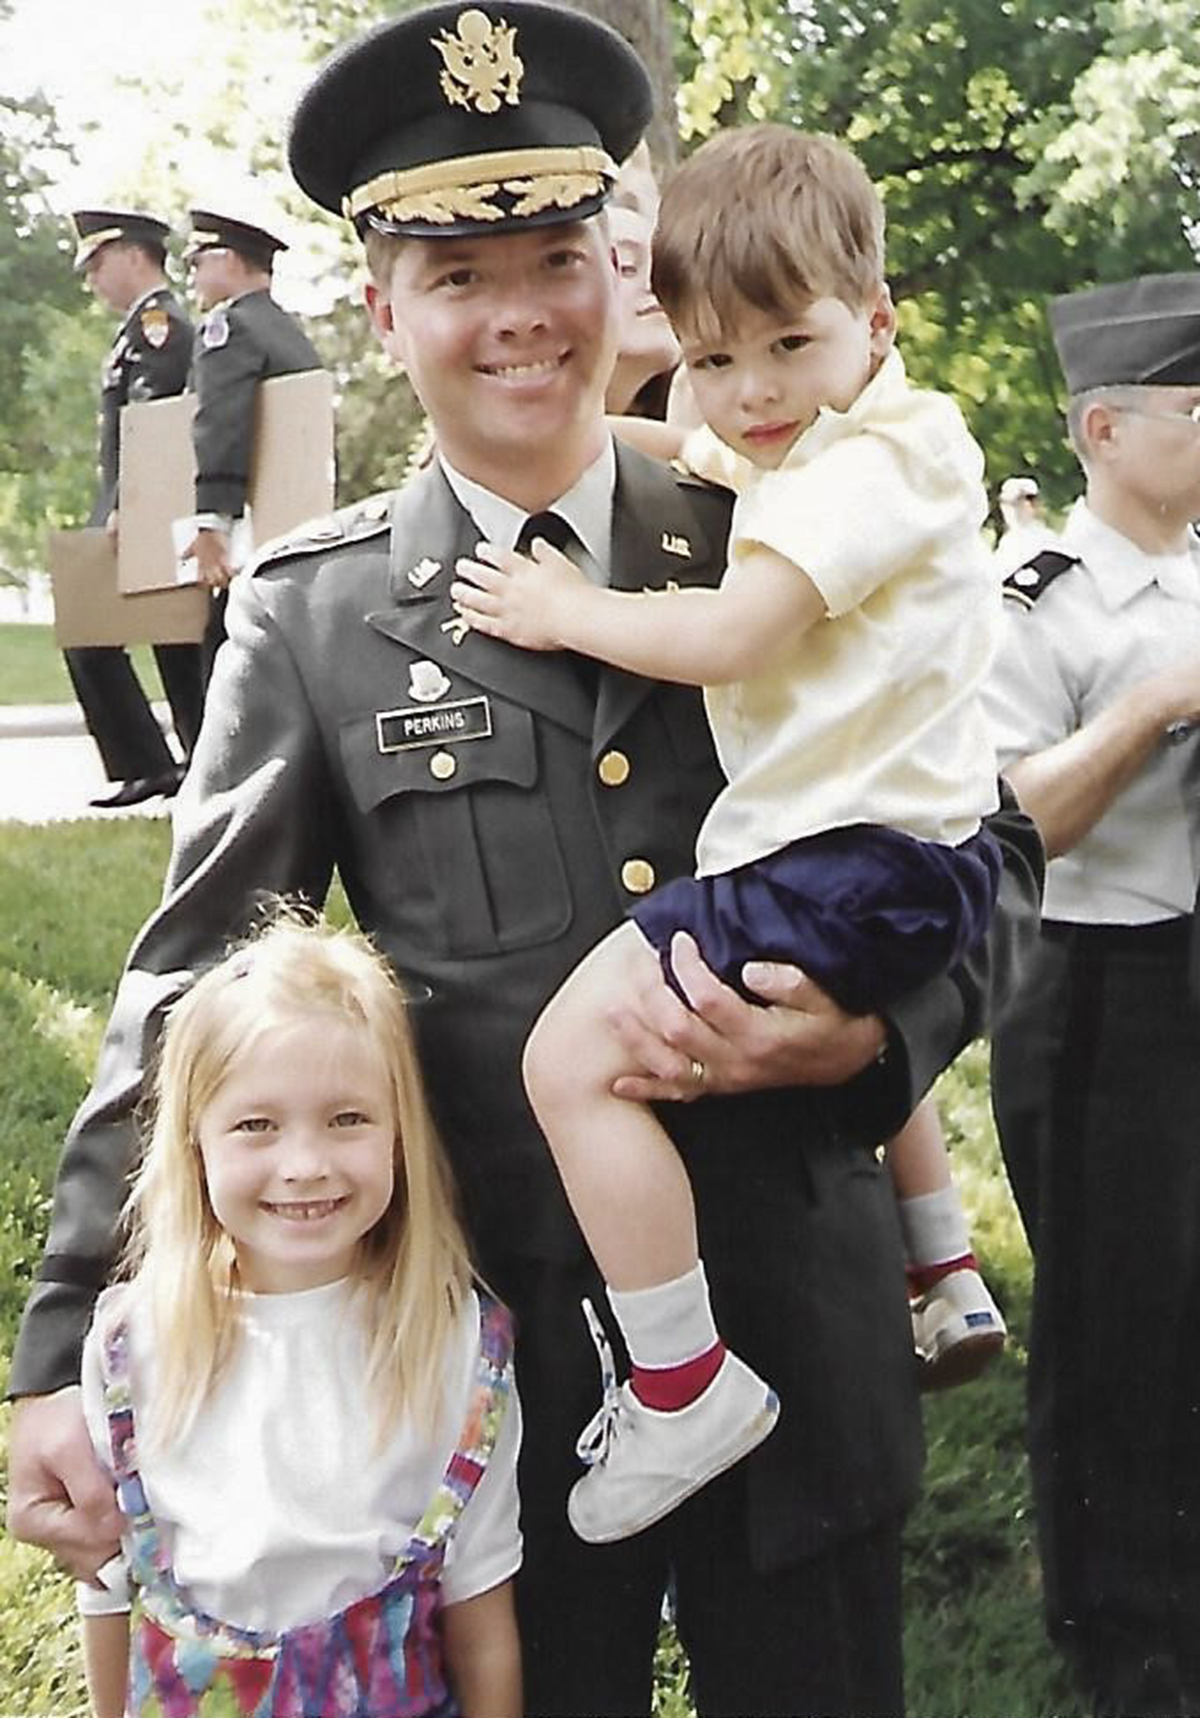 Maj. David Perkins with daughter, Cassandra, and son, Chad, following graduation from the Command and General Staff College in June 1992.